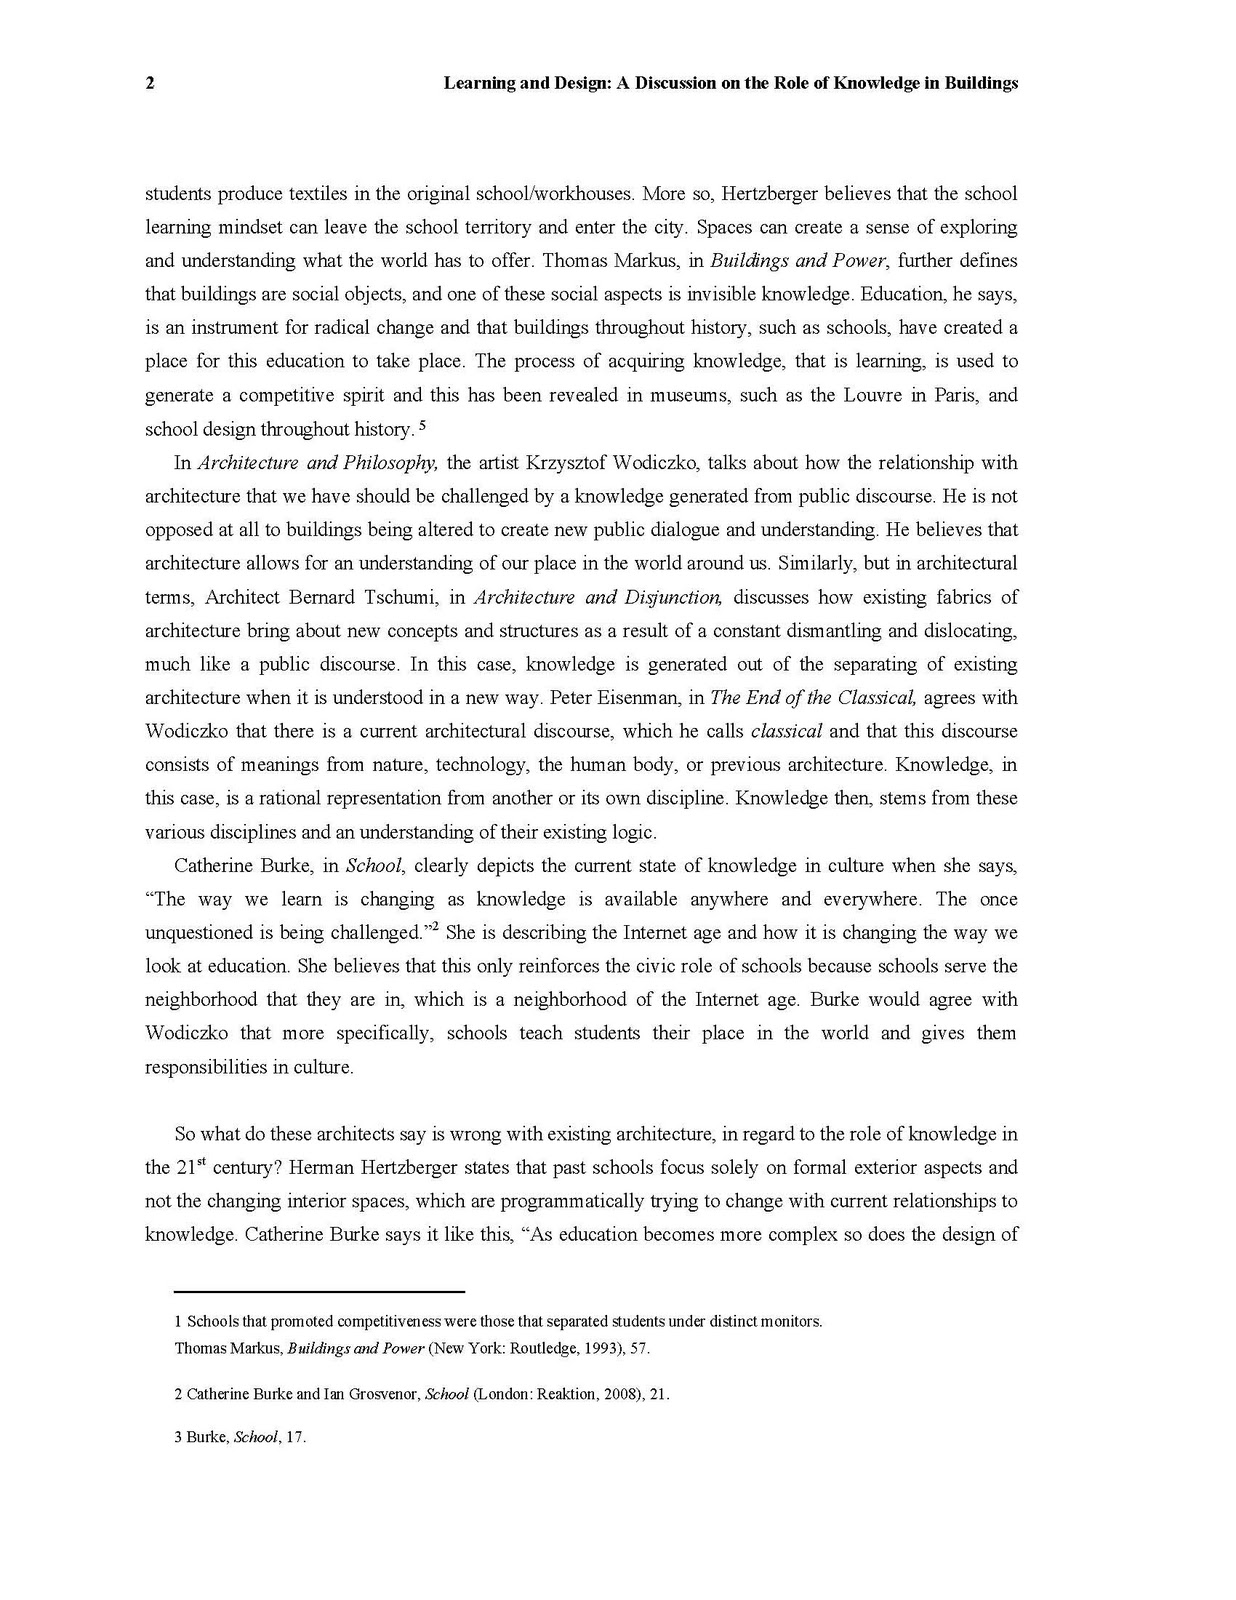 006 Bibliographic Essay Bibliogahhicessay Page 2 Wondrous Example Template History Full